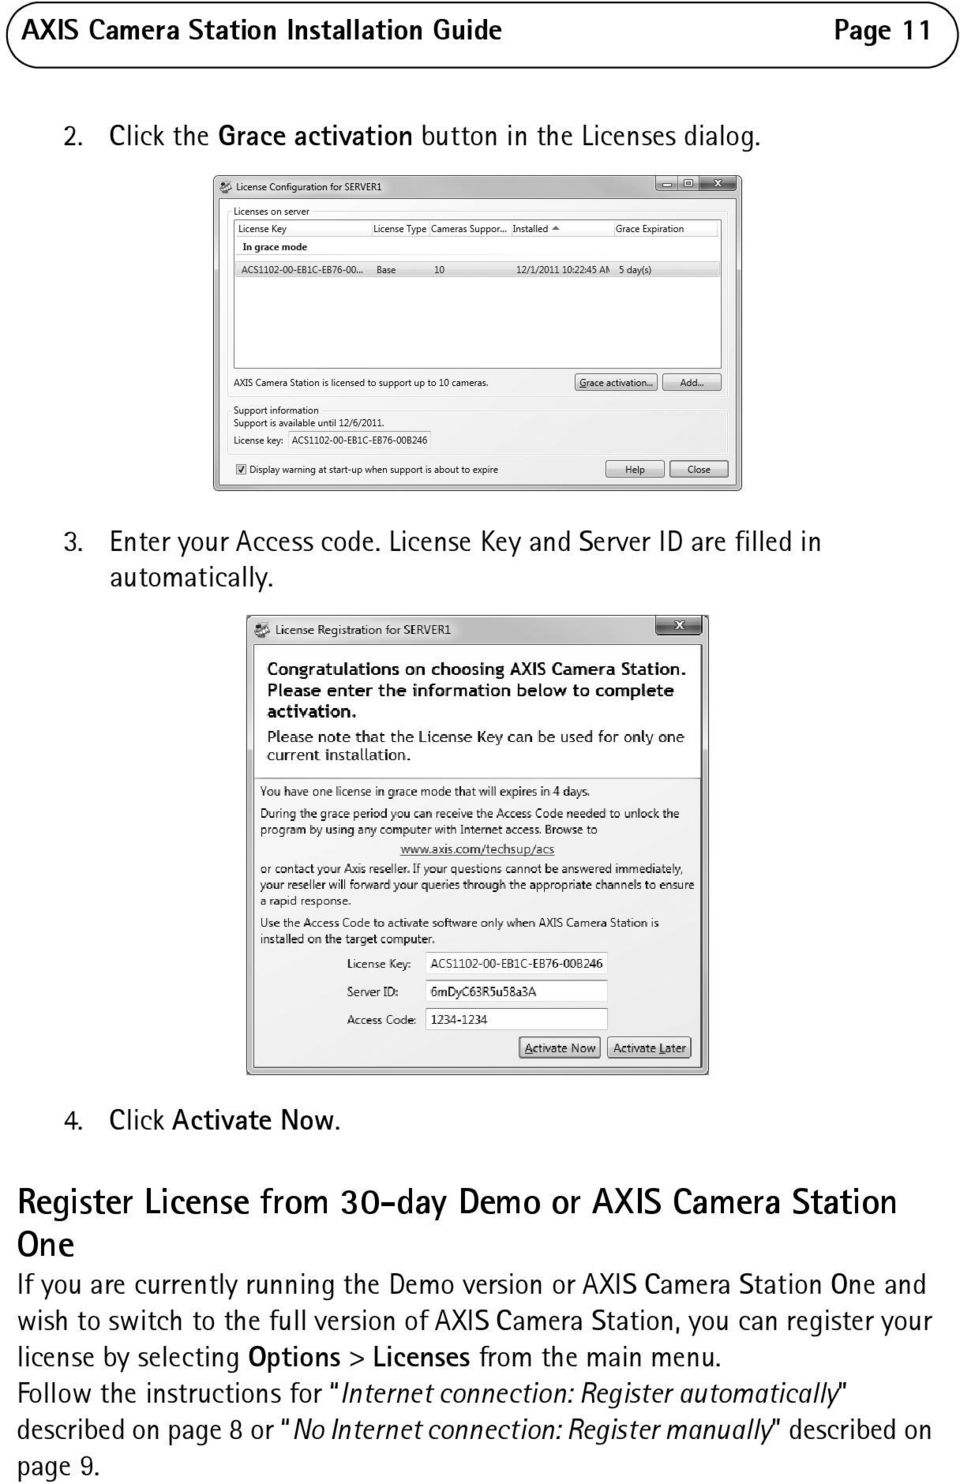 Register License from 30-day Demo or AXIS Camera Station One If you are currently running the Demo version or AXIS Camera Station One and wish to switch to the full